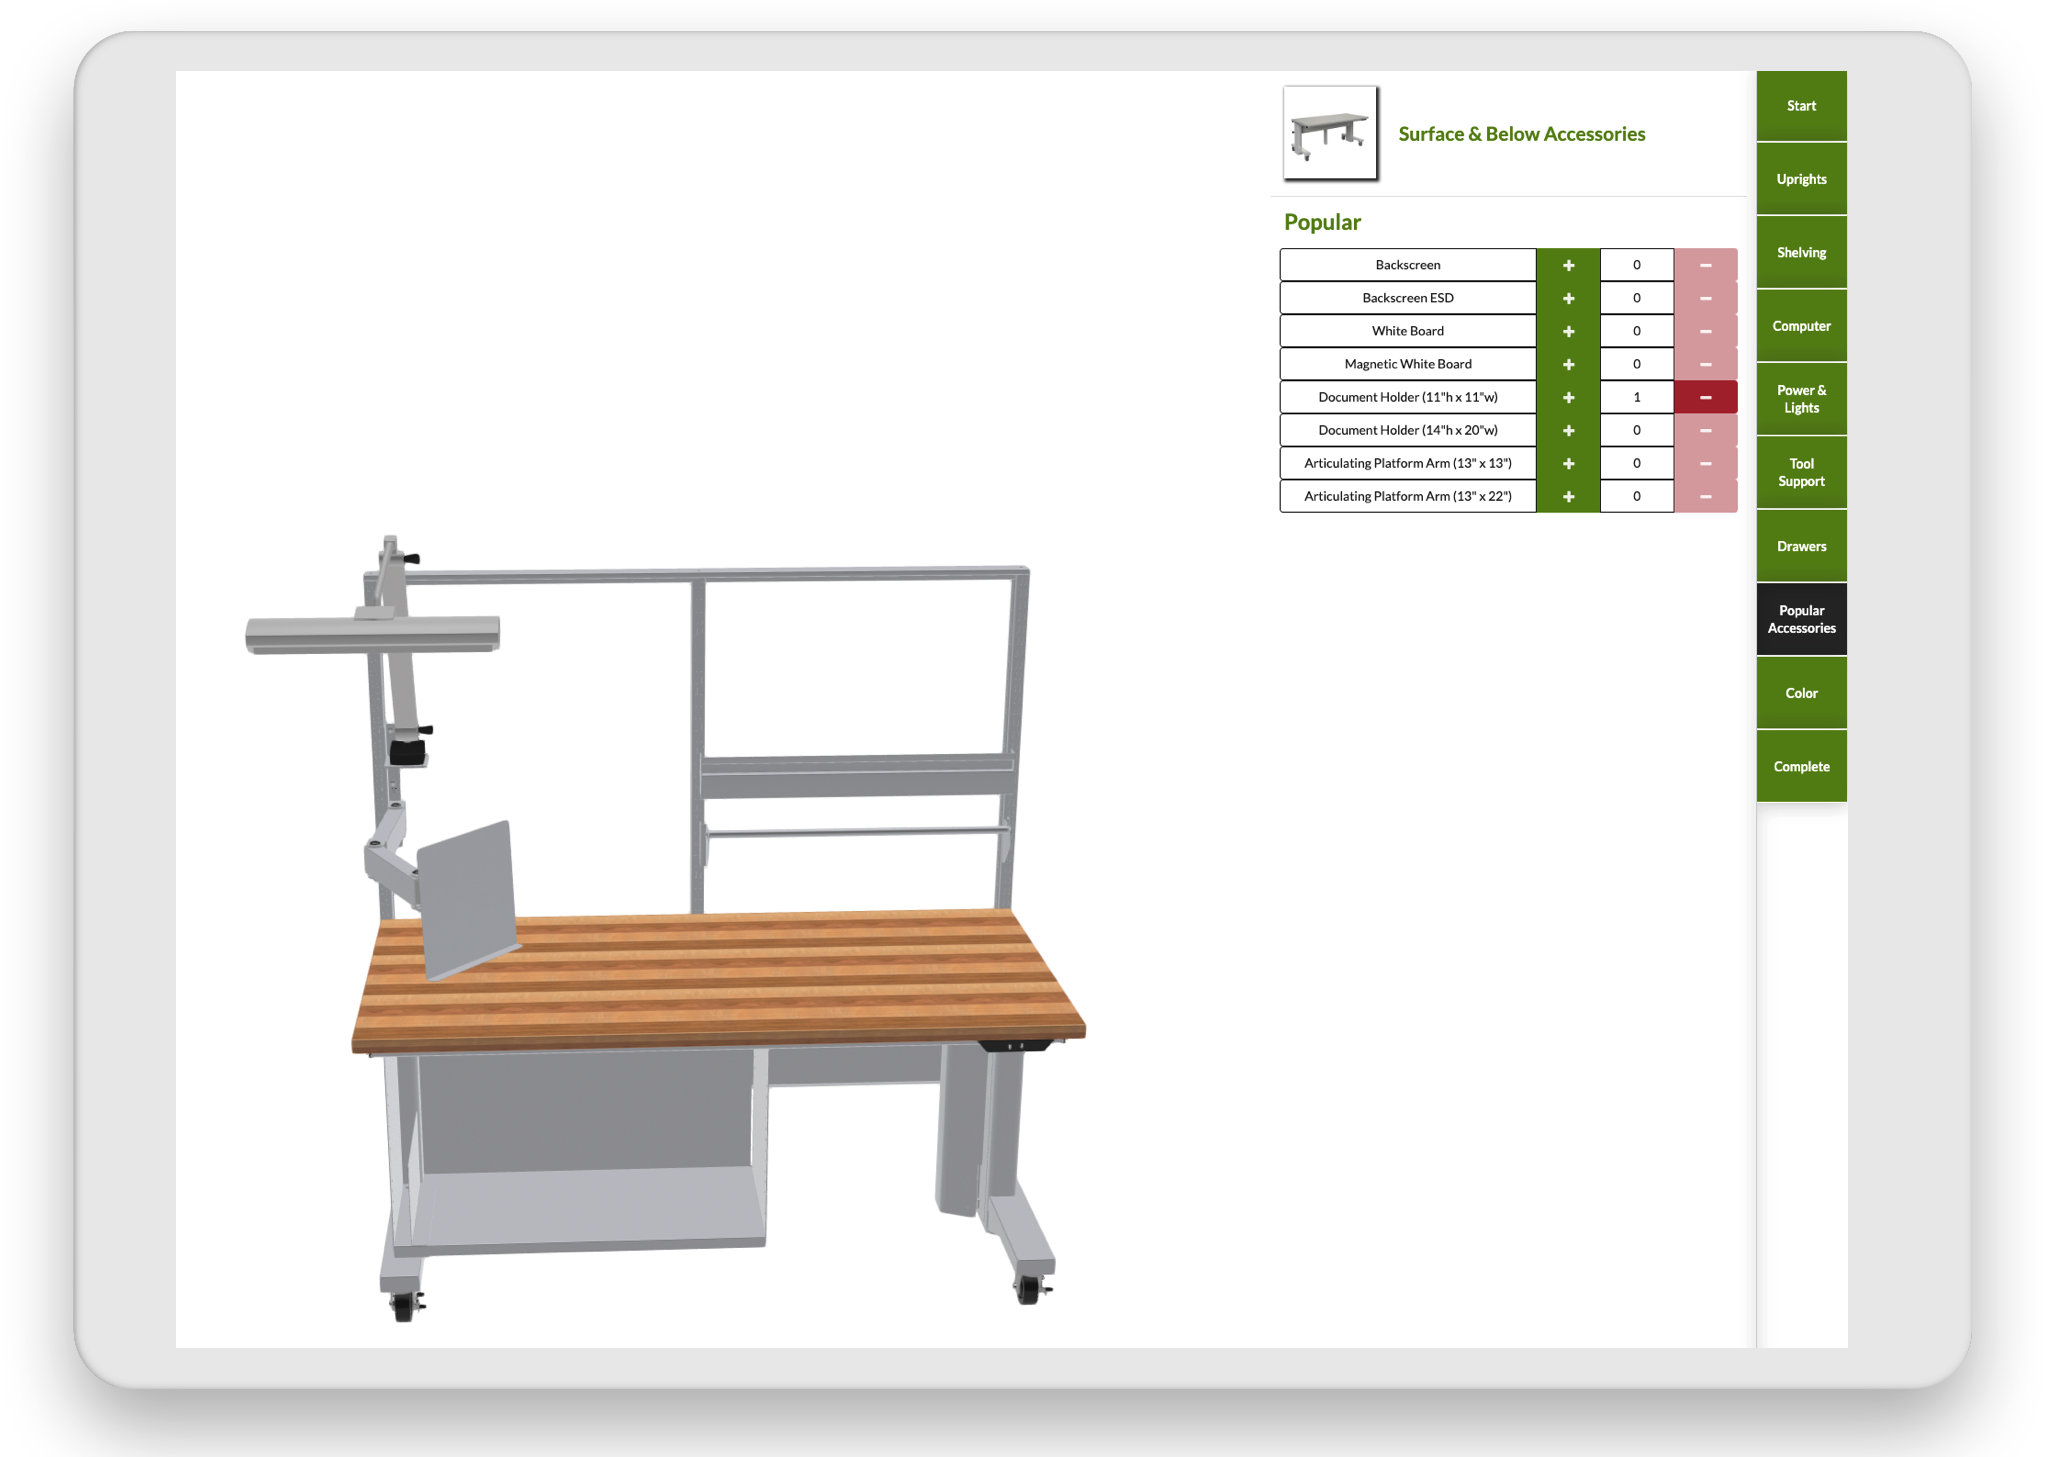 3D configurator image for table and tools